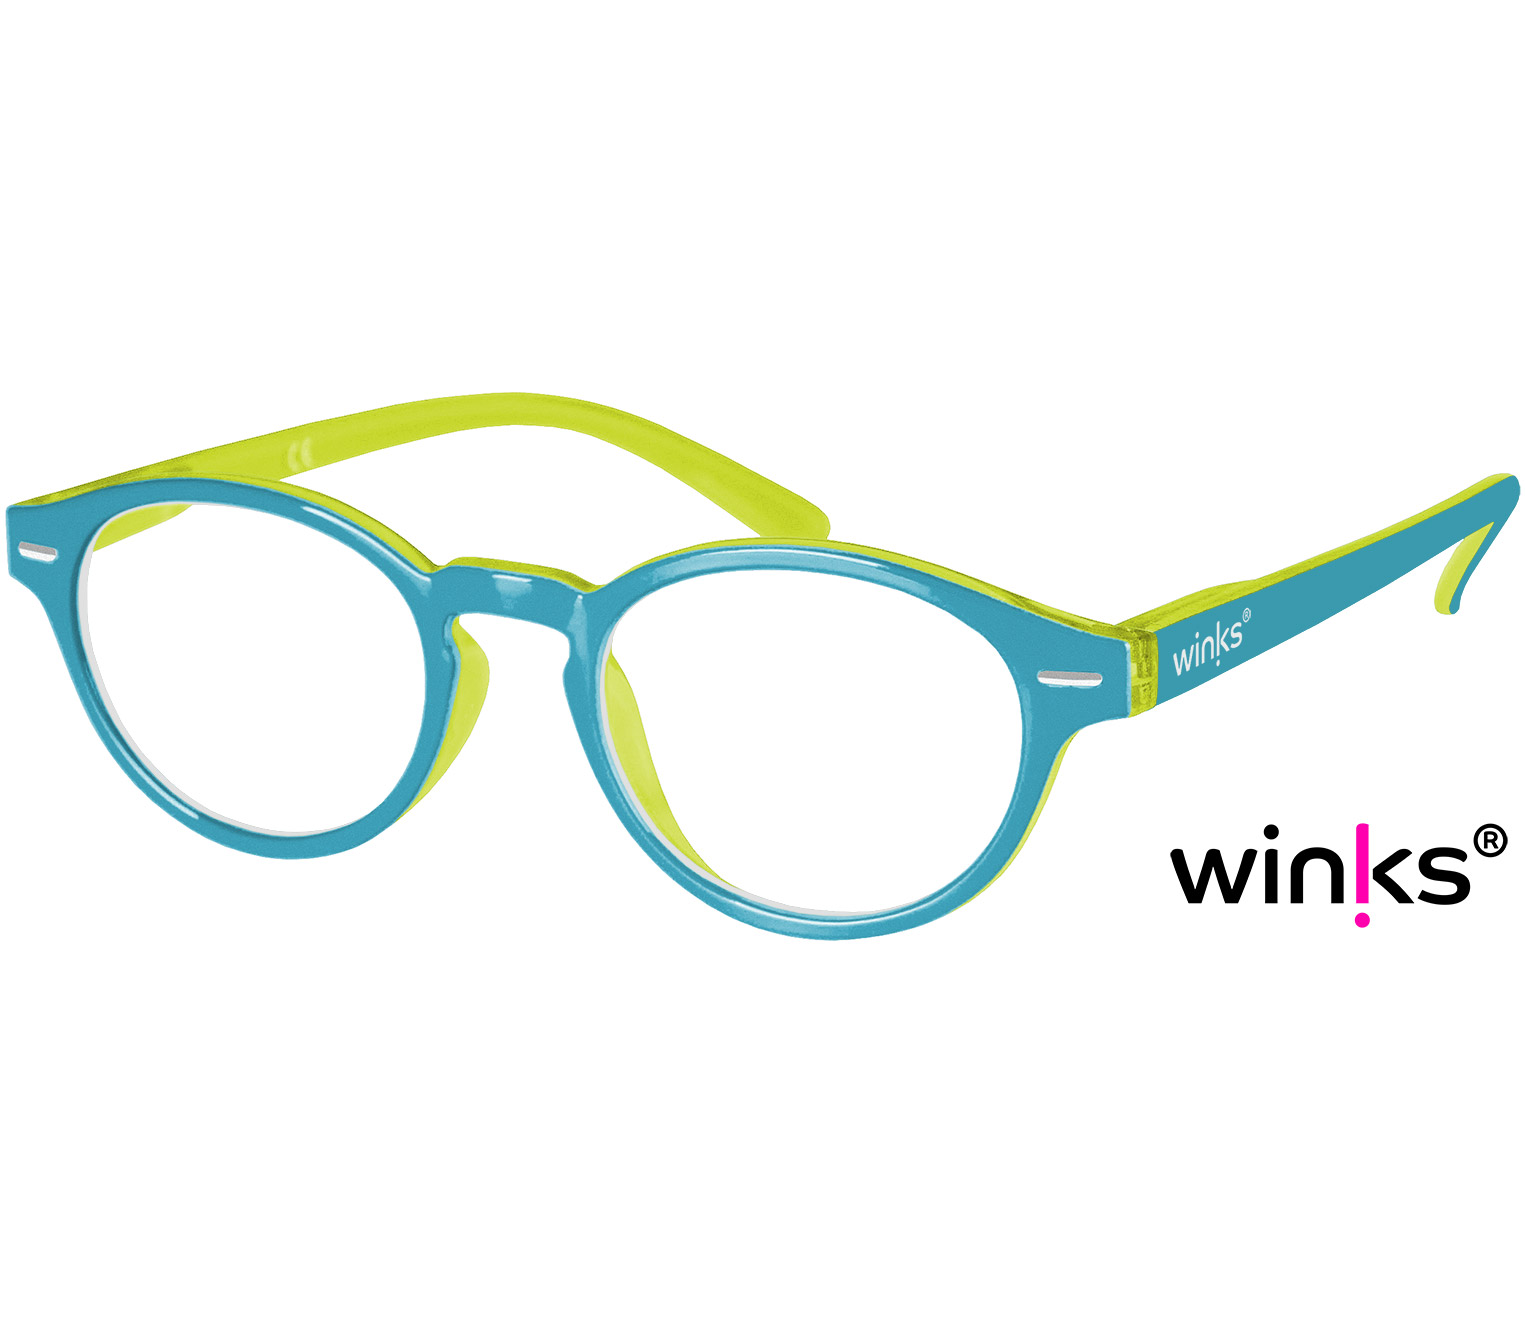 Main Image (Angle) - Espresso (Turquoise) Retro Reading Glasses